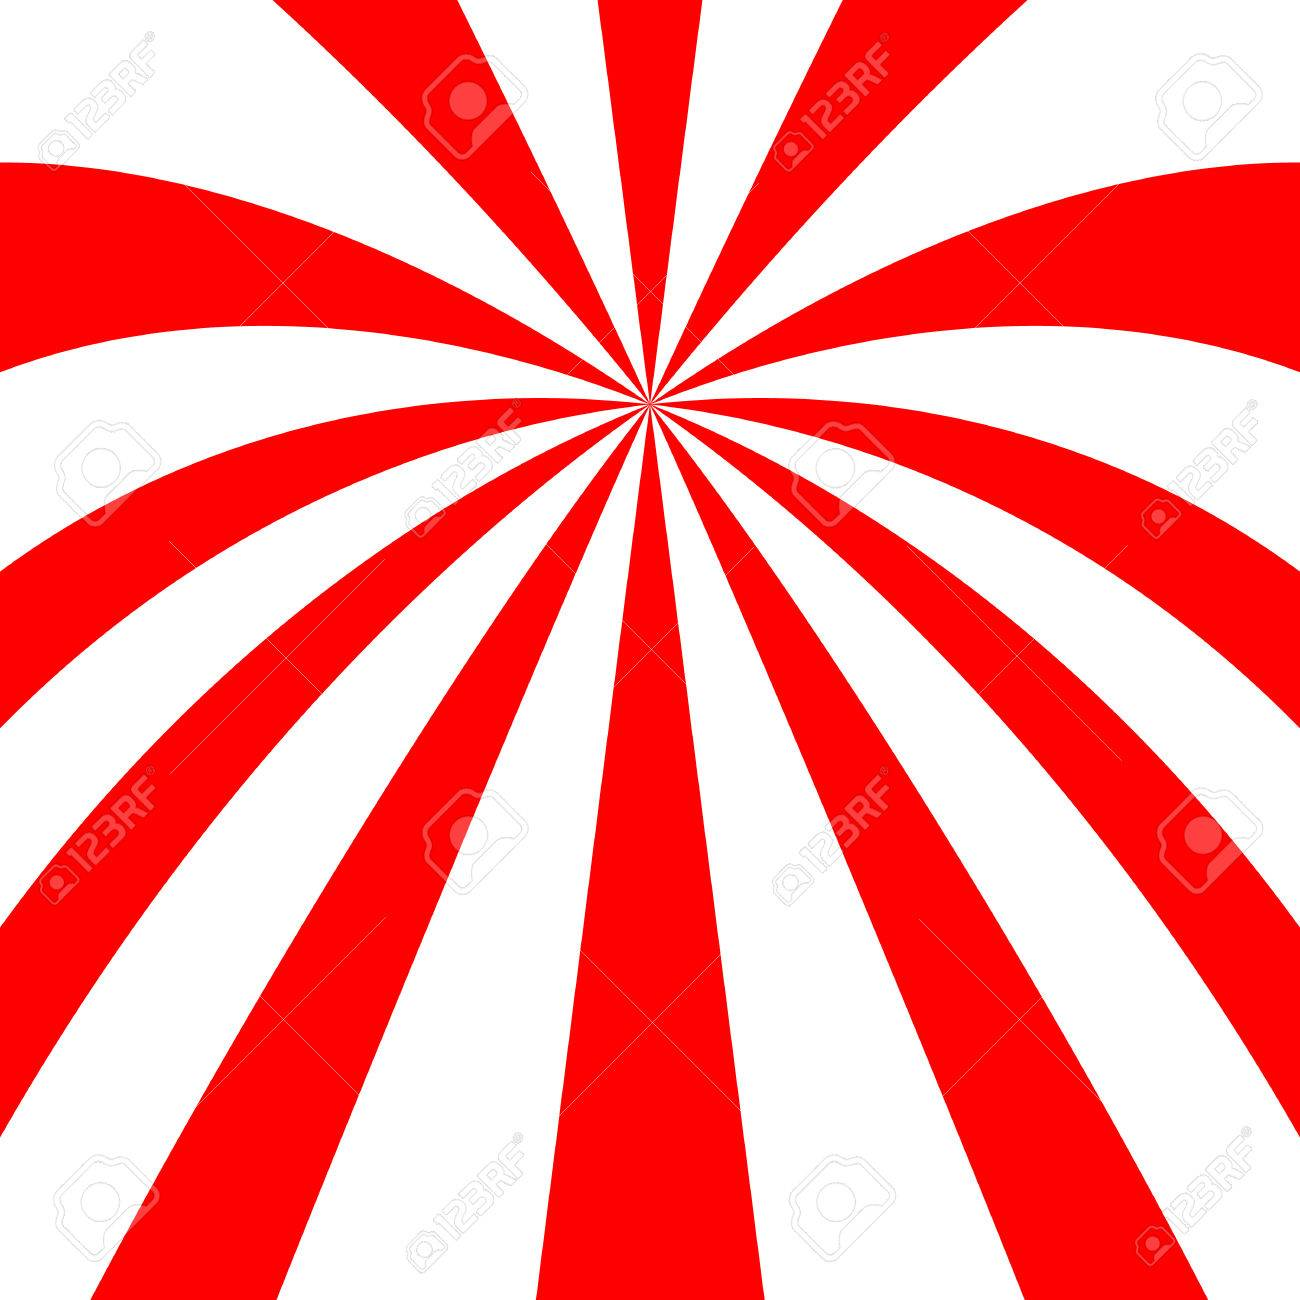 1300x1300 Abstract Starburst Red Background. Cool Background For Holiday